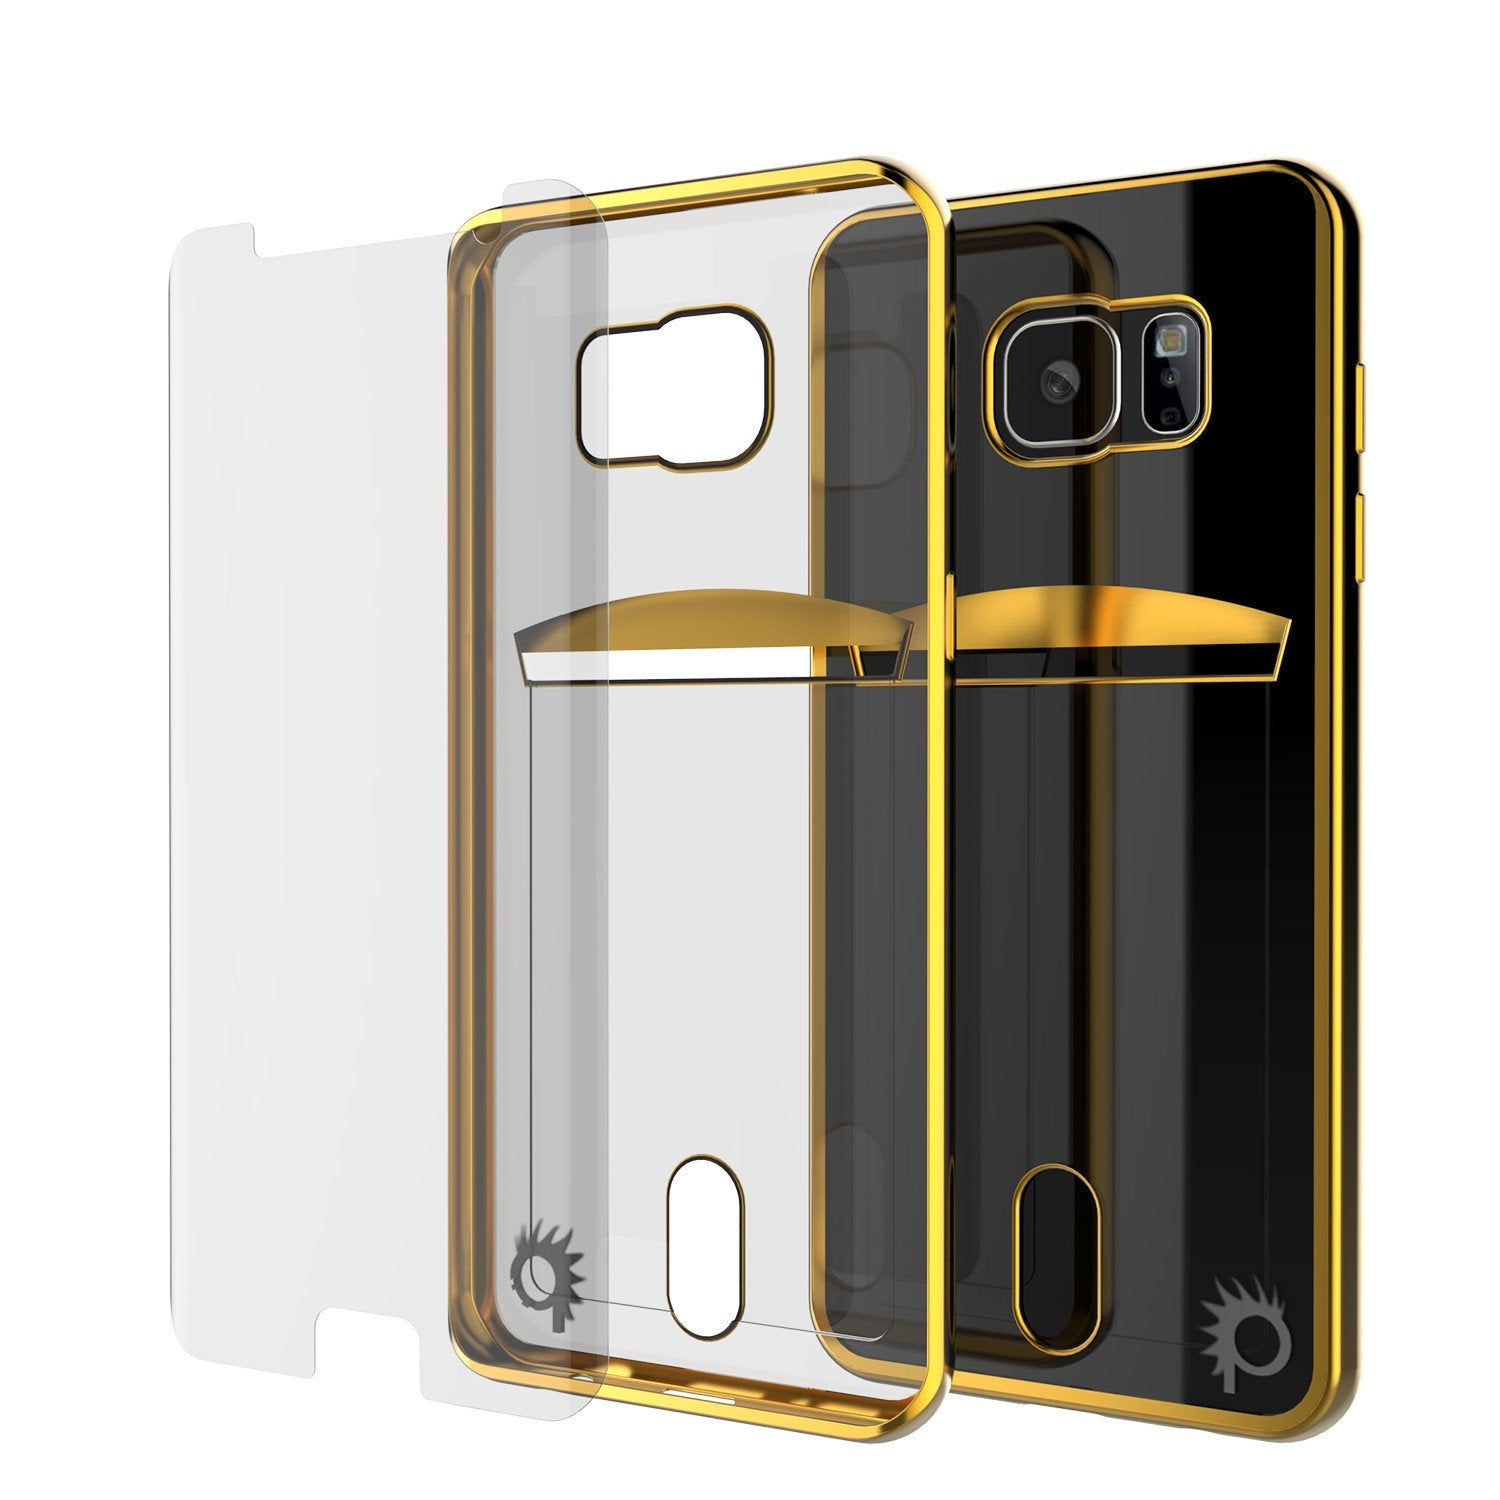 Galaxy S7 Case, PUNKCASE® LUCID Gold Series | Card Slot | SHIELD Screen Protector | Ultra fit - PunkCase NZ